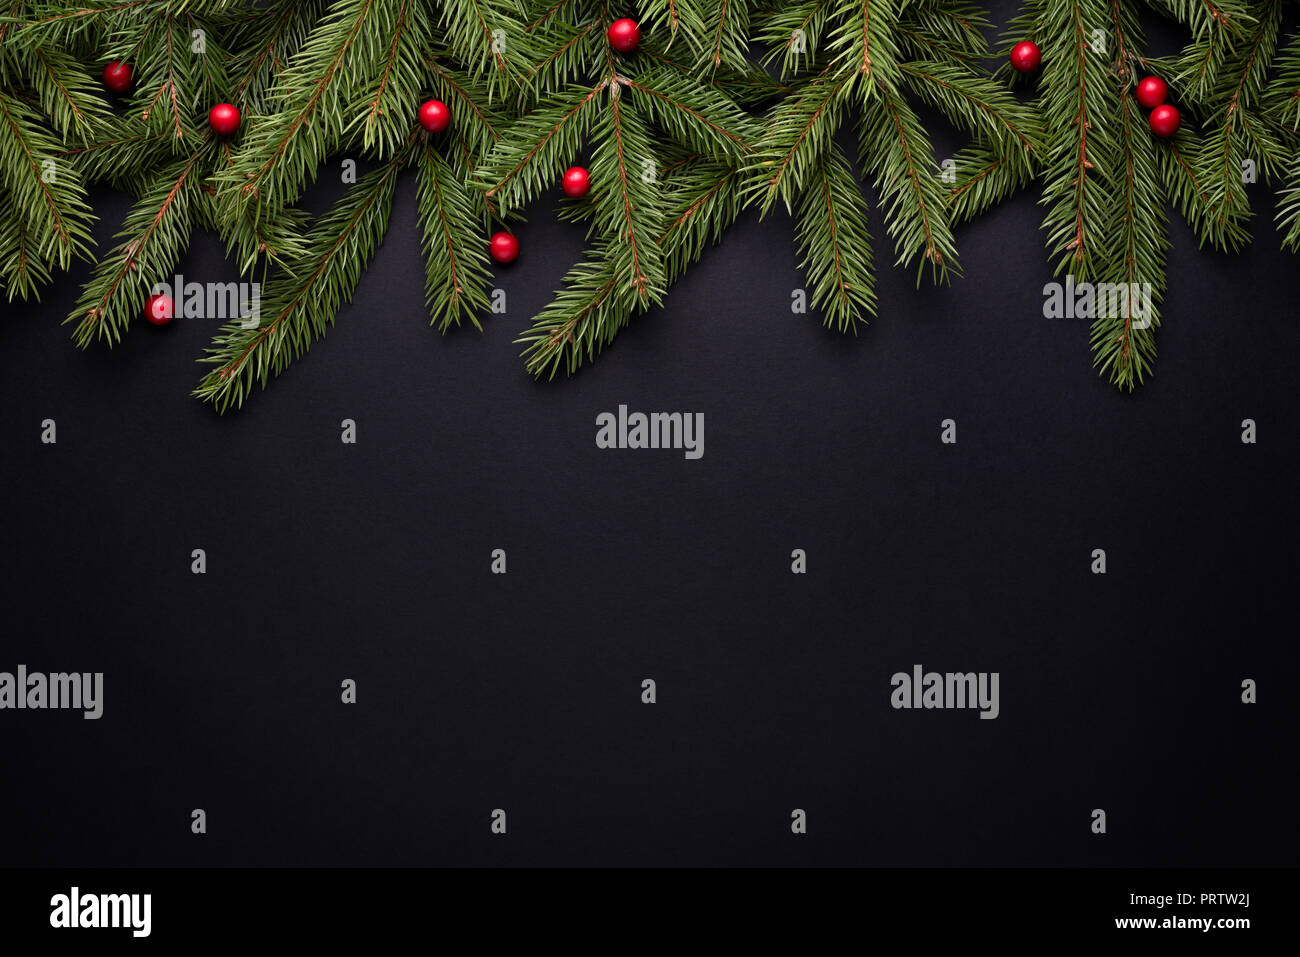 Christmas Holiday Background.Christmas Holiday Background With Copy Space For Advertising